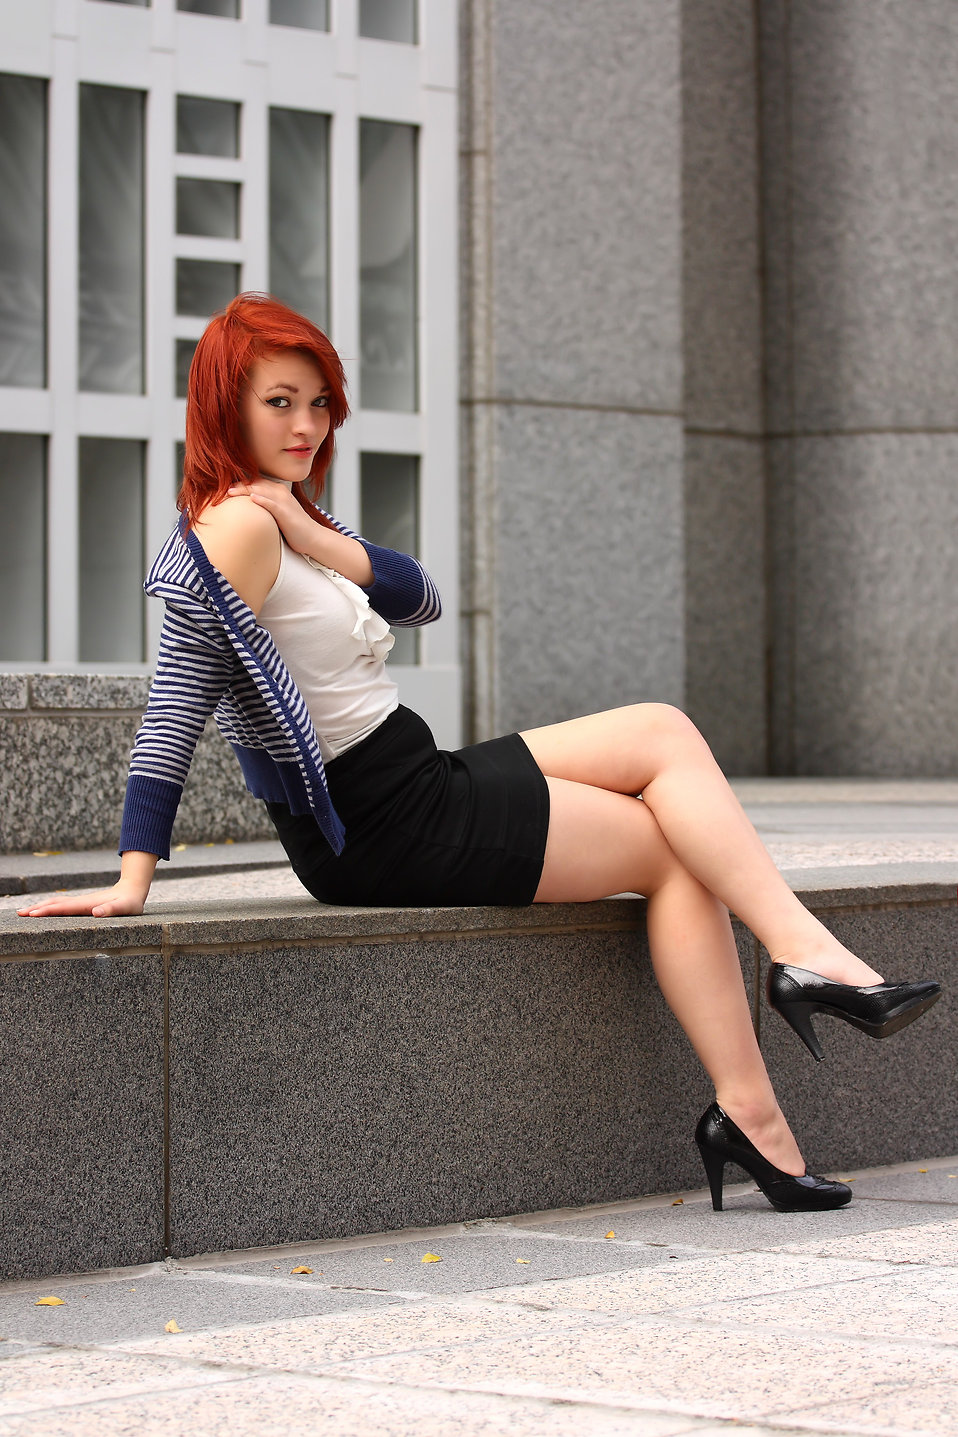 A beautiful young woman in business attire : Free Stock Photo